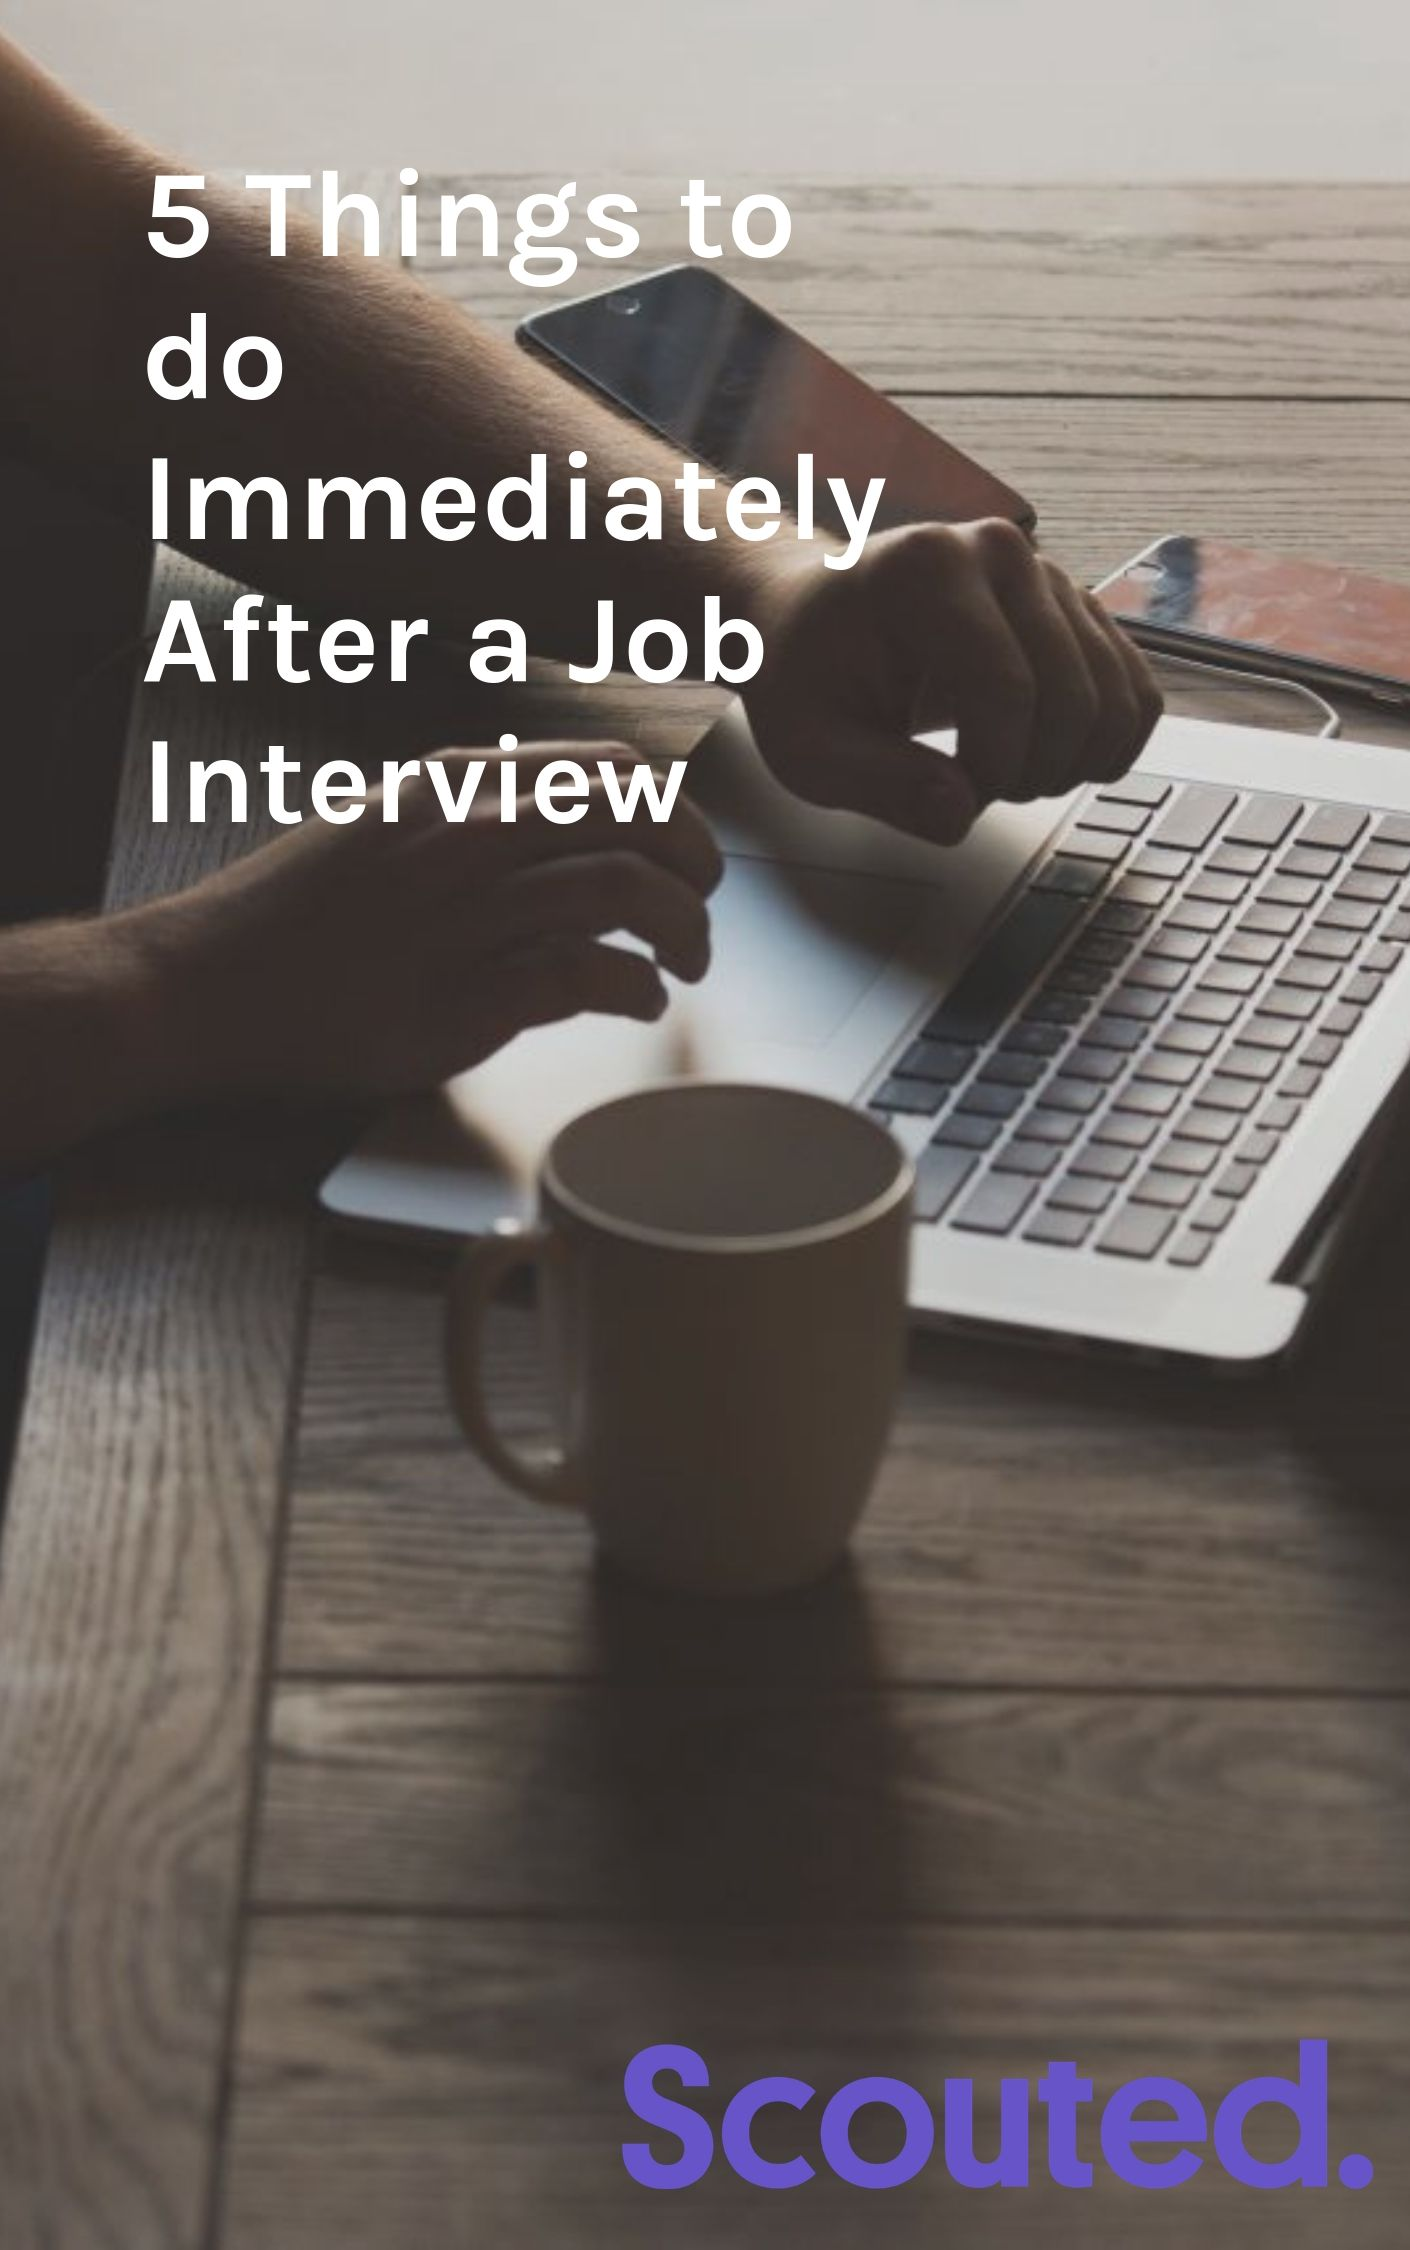 5 Things to do Immediately After a Job Interview